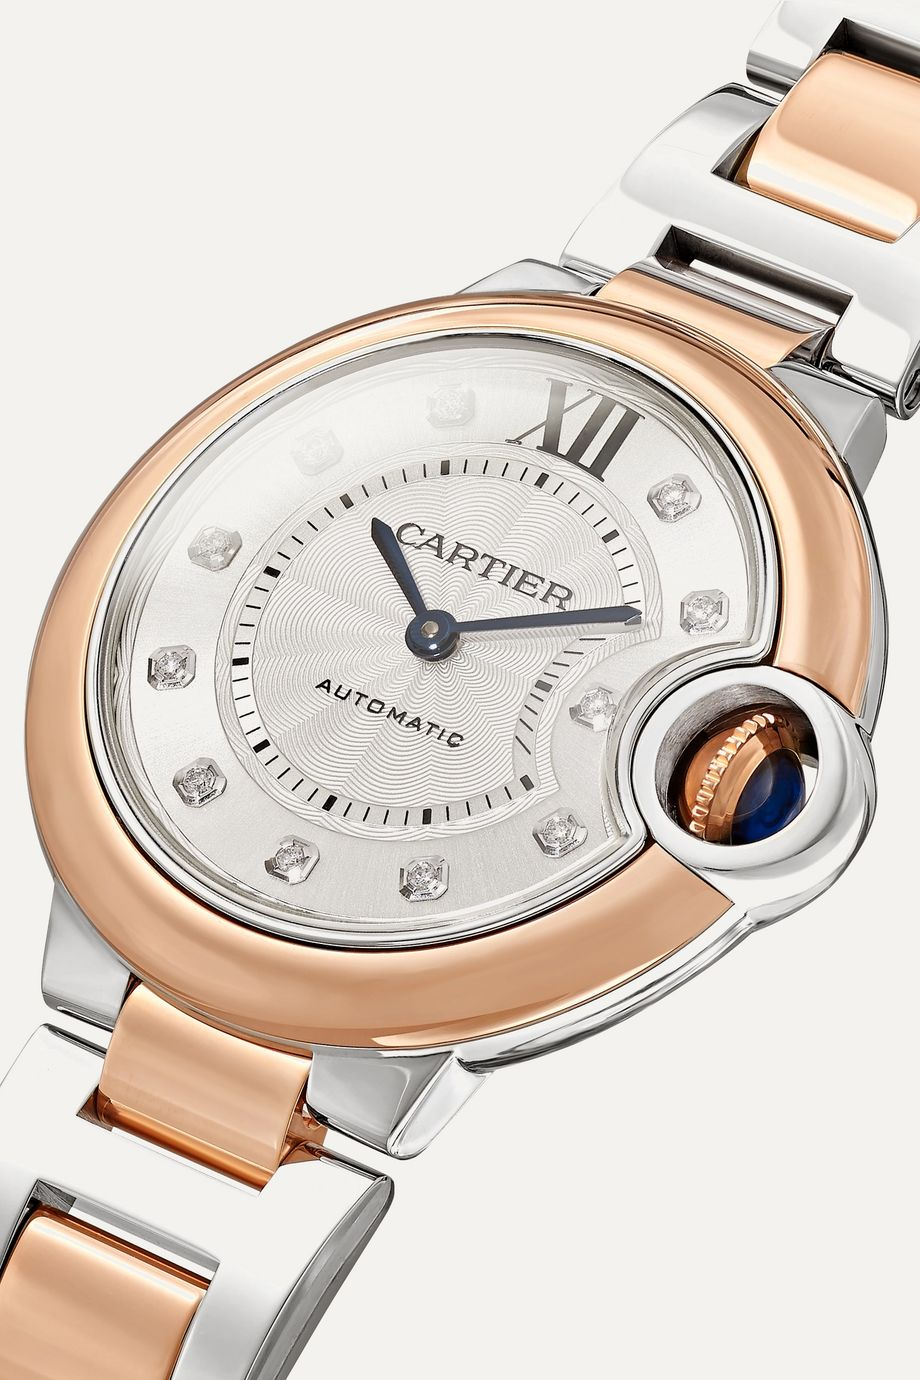 Cartier Ballon Bleu de Cartier 33mm 18-karat pink gold, stainless steel and diamond watch